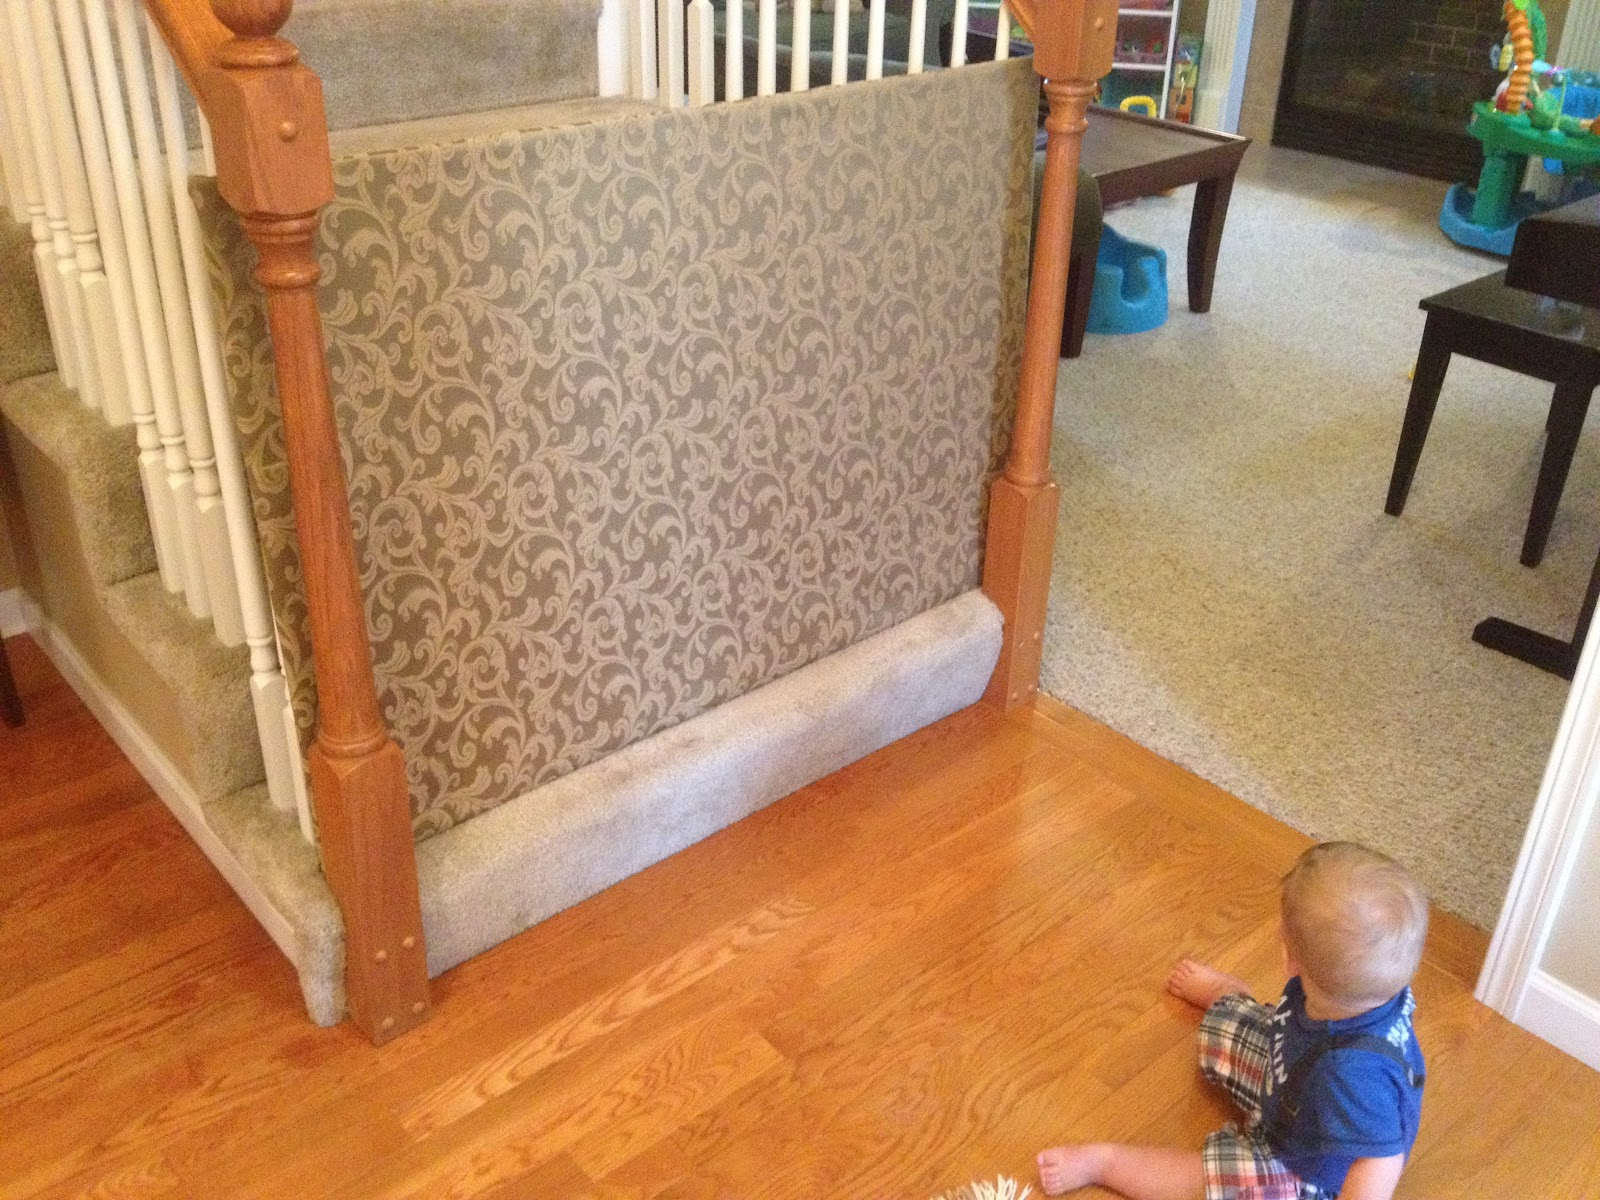 A Pair of Schues!: DIY Baby Gate